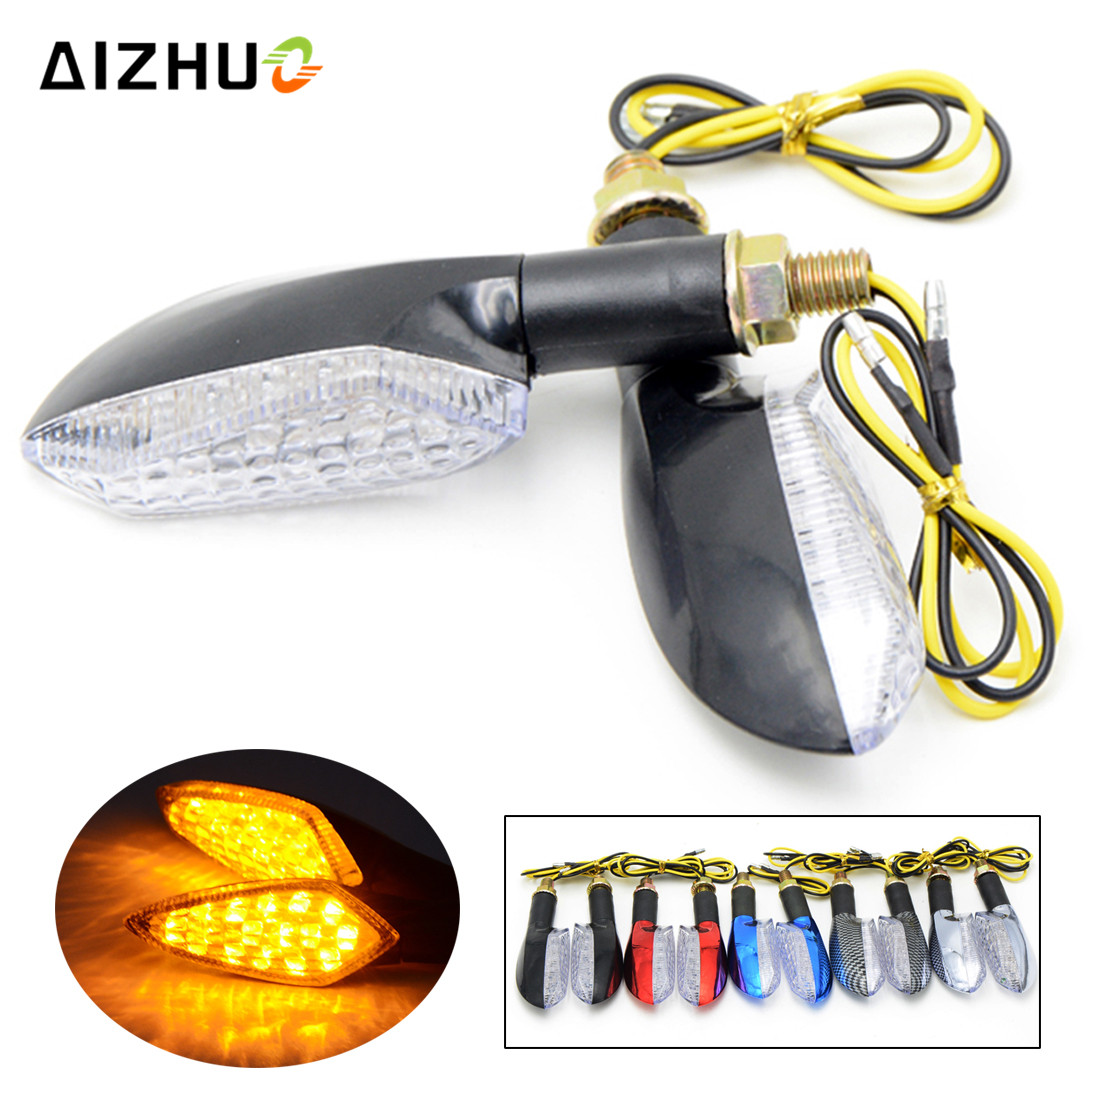 Motorcycle LED Turn Signal Lights Scooter Flasher Arrow Indicators Flasher Lights For Honda Kawasaki Suzuki KTM BMW